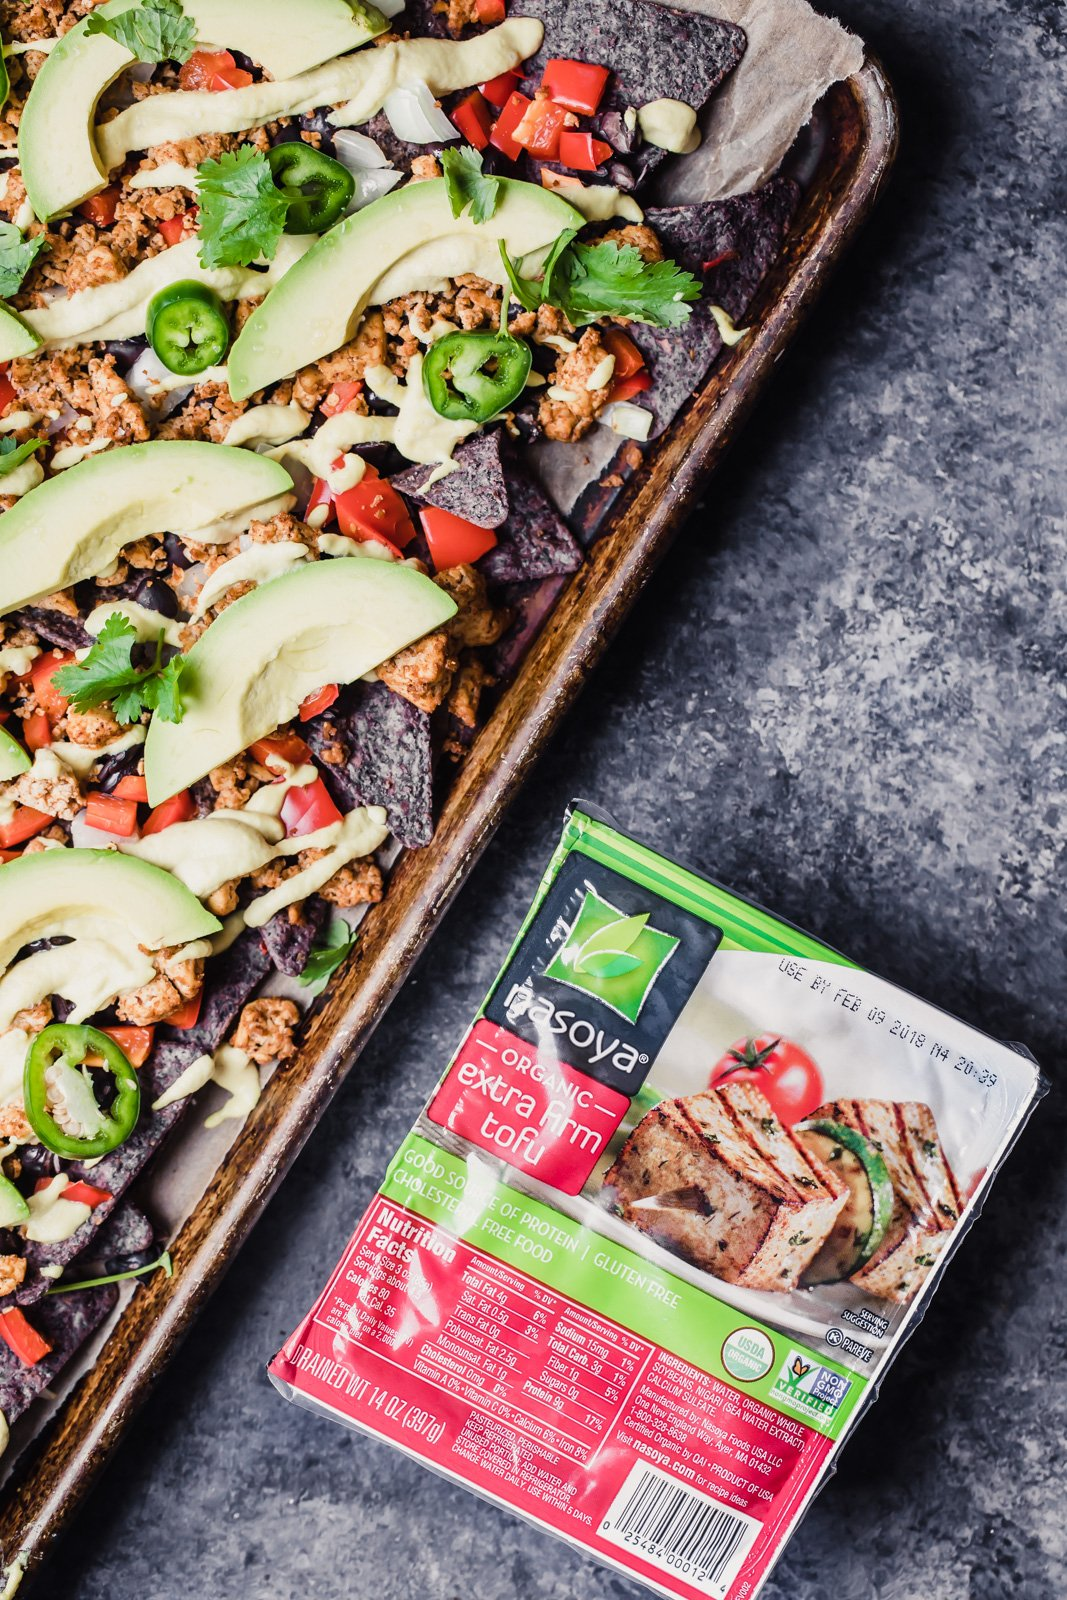 vegan nachos on a baking tray next to a package of tofu